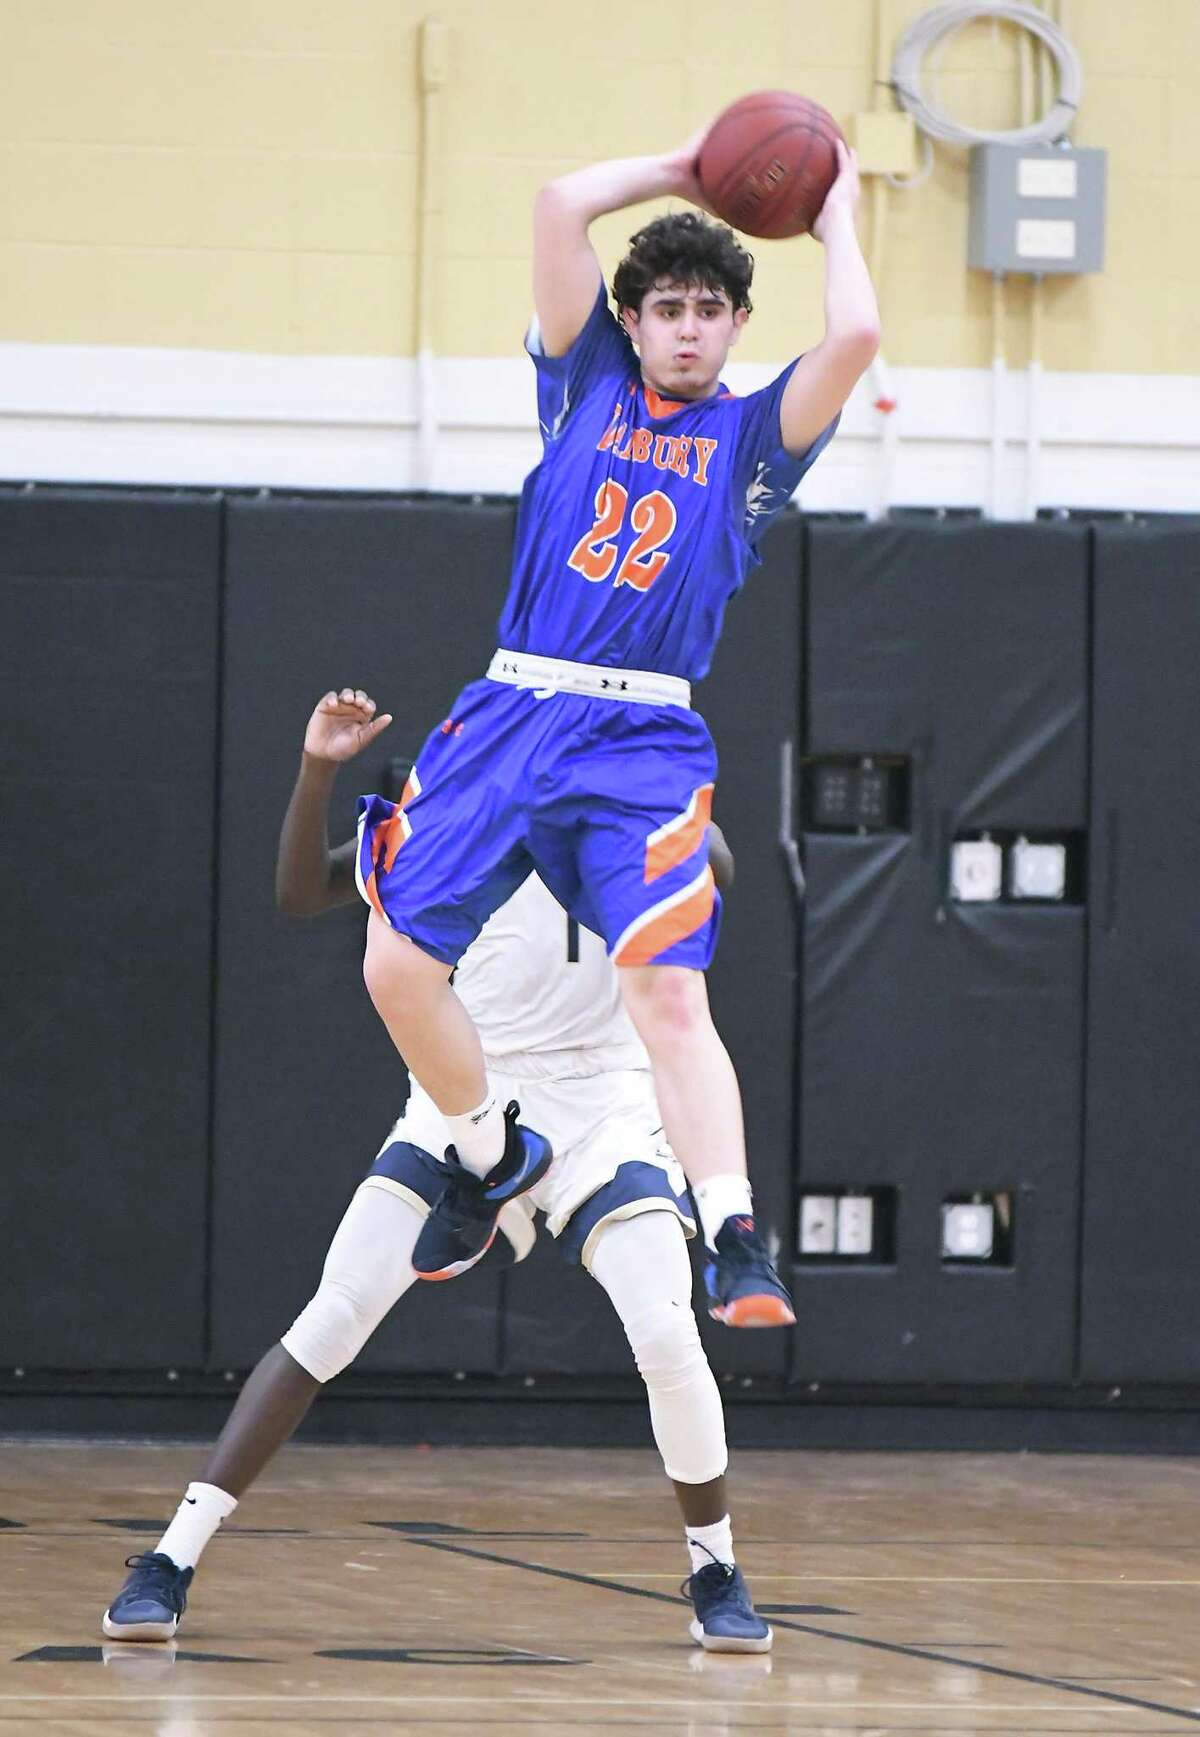 Danbury's Cameron Snow looks to make a pass during the Division I boys basketball quarterfinals against Notre Dame-Fairfield at Trumbull High on Monday.